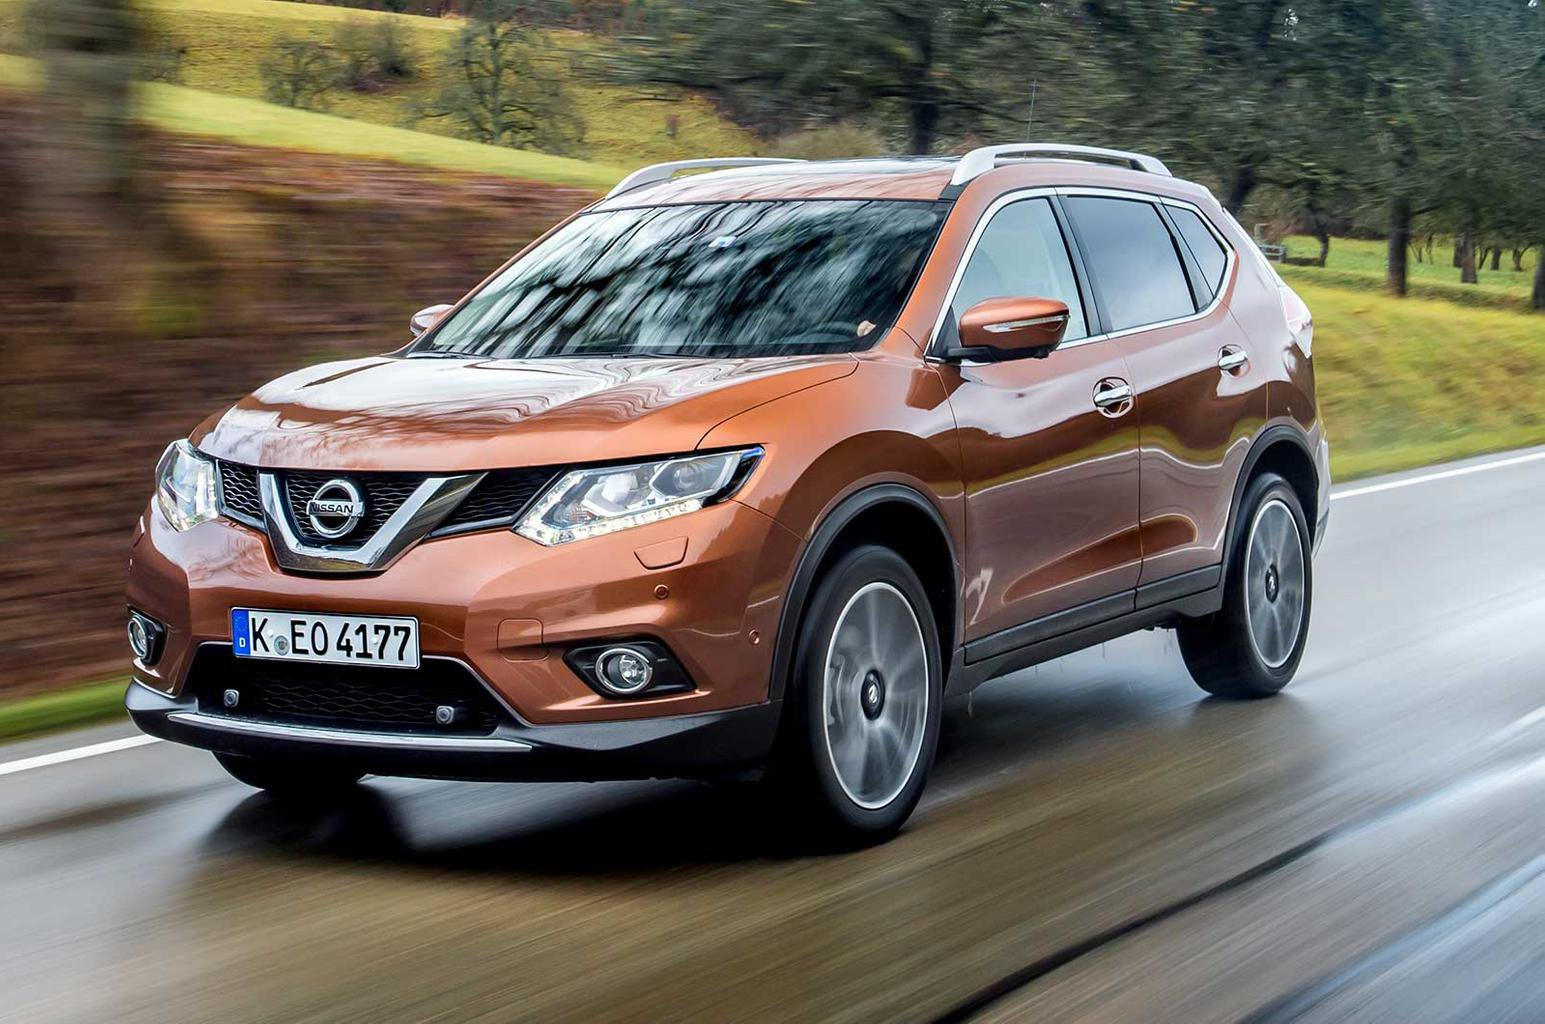 2017 Nissan X-Trail 2.0d 4WD review